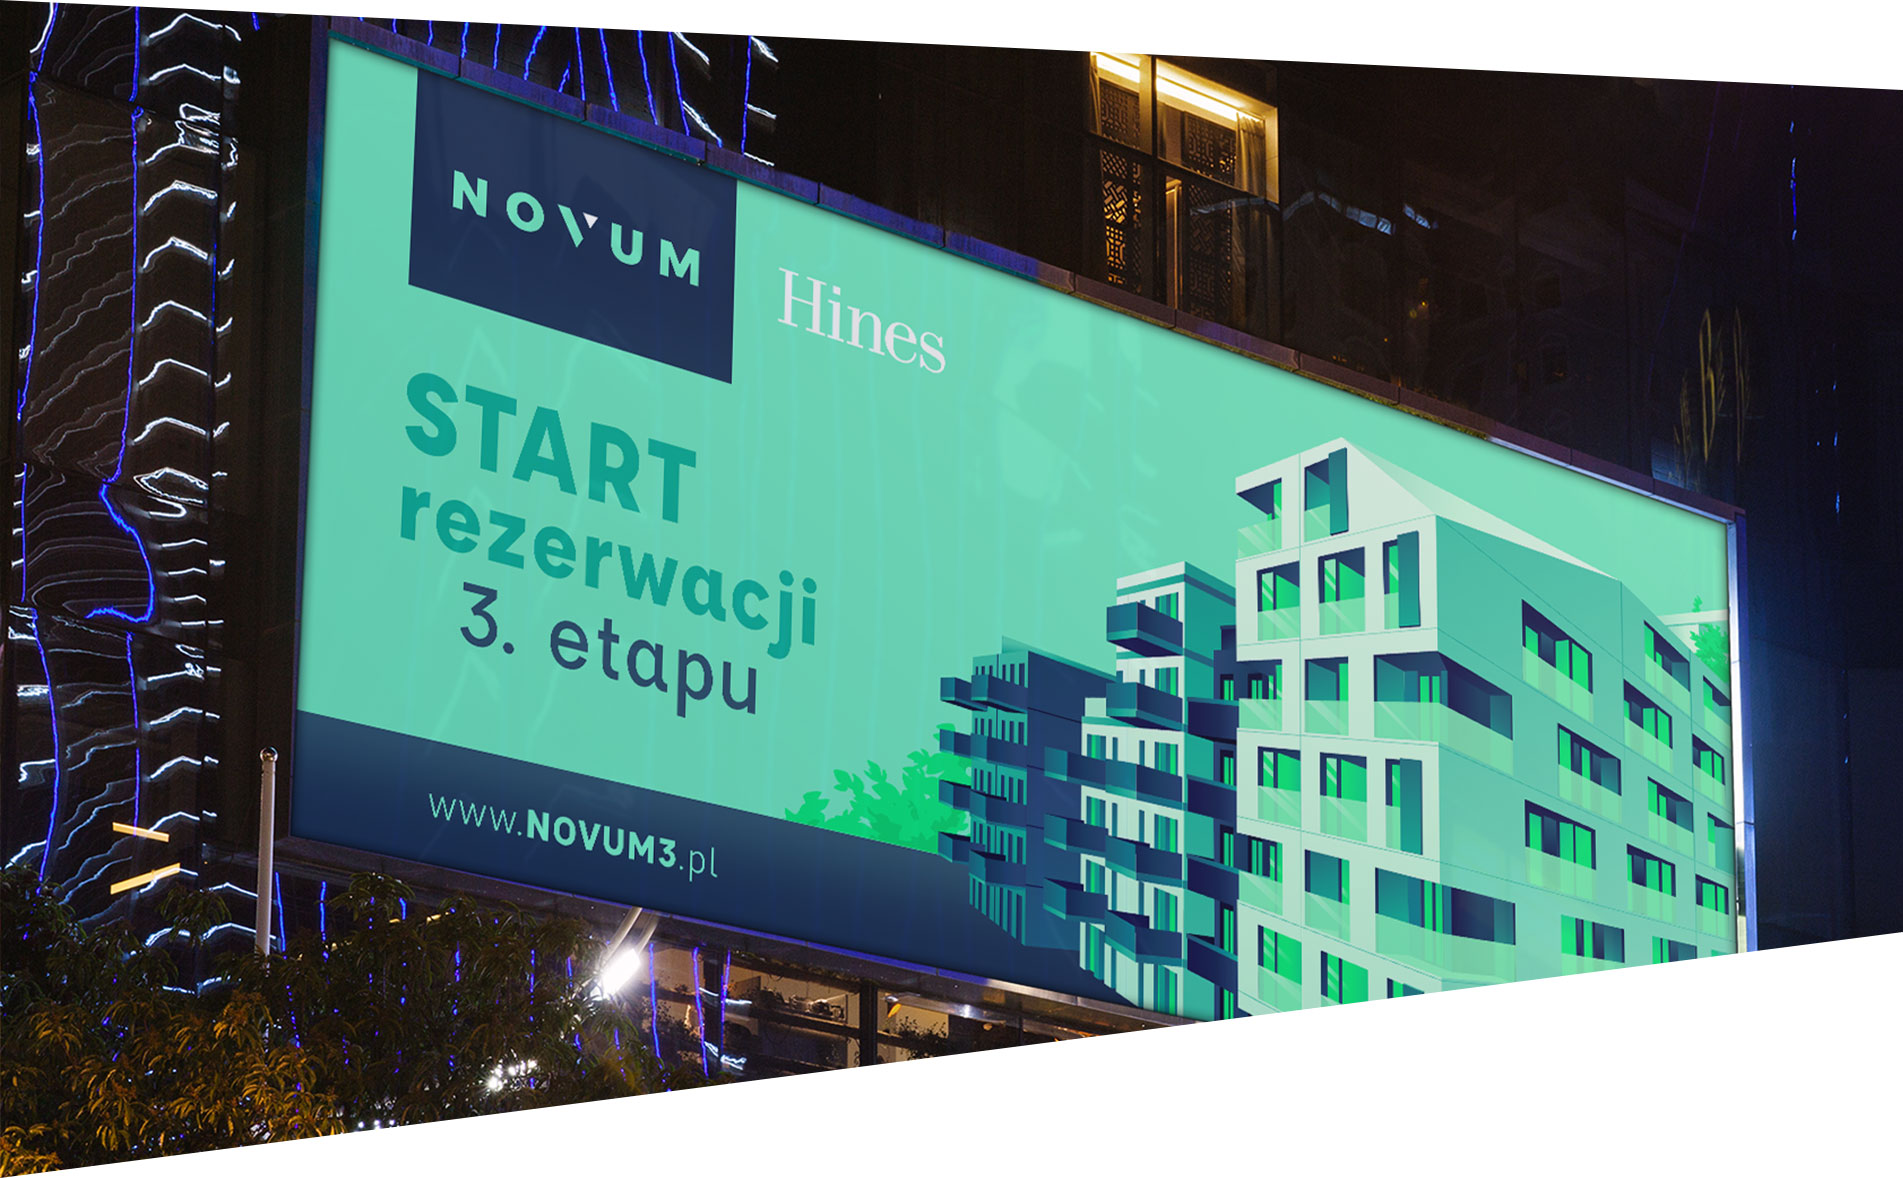 https://peppermint.pl/wp-content/uploads/2019/05/novum-img2.jpg